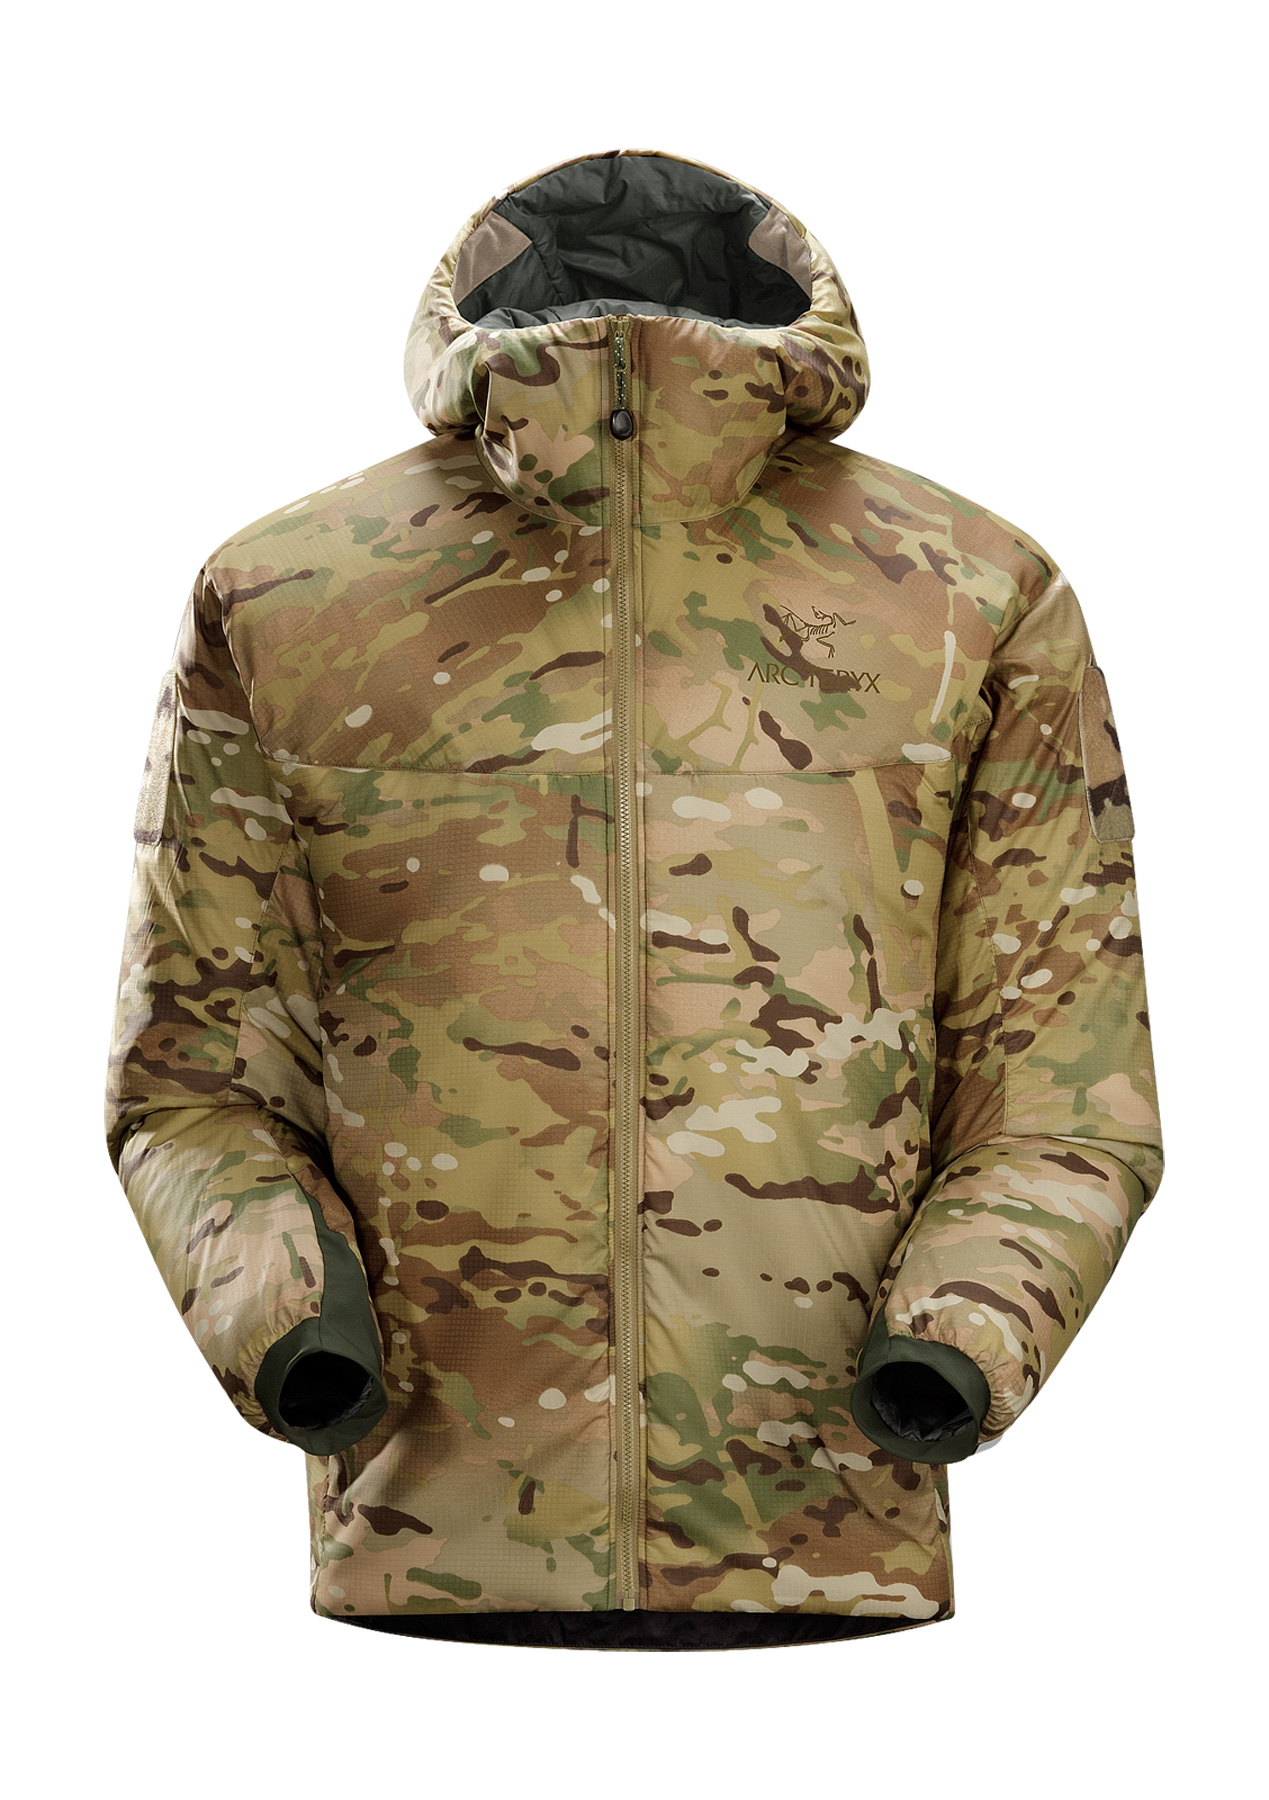 Limited Edition Atom Sv Hoody Multicam News Arc Teryx Leaf